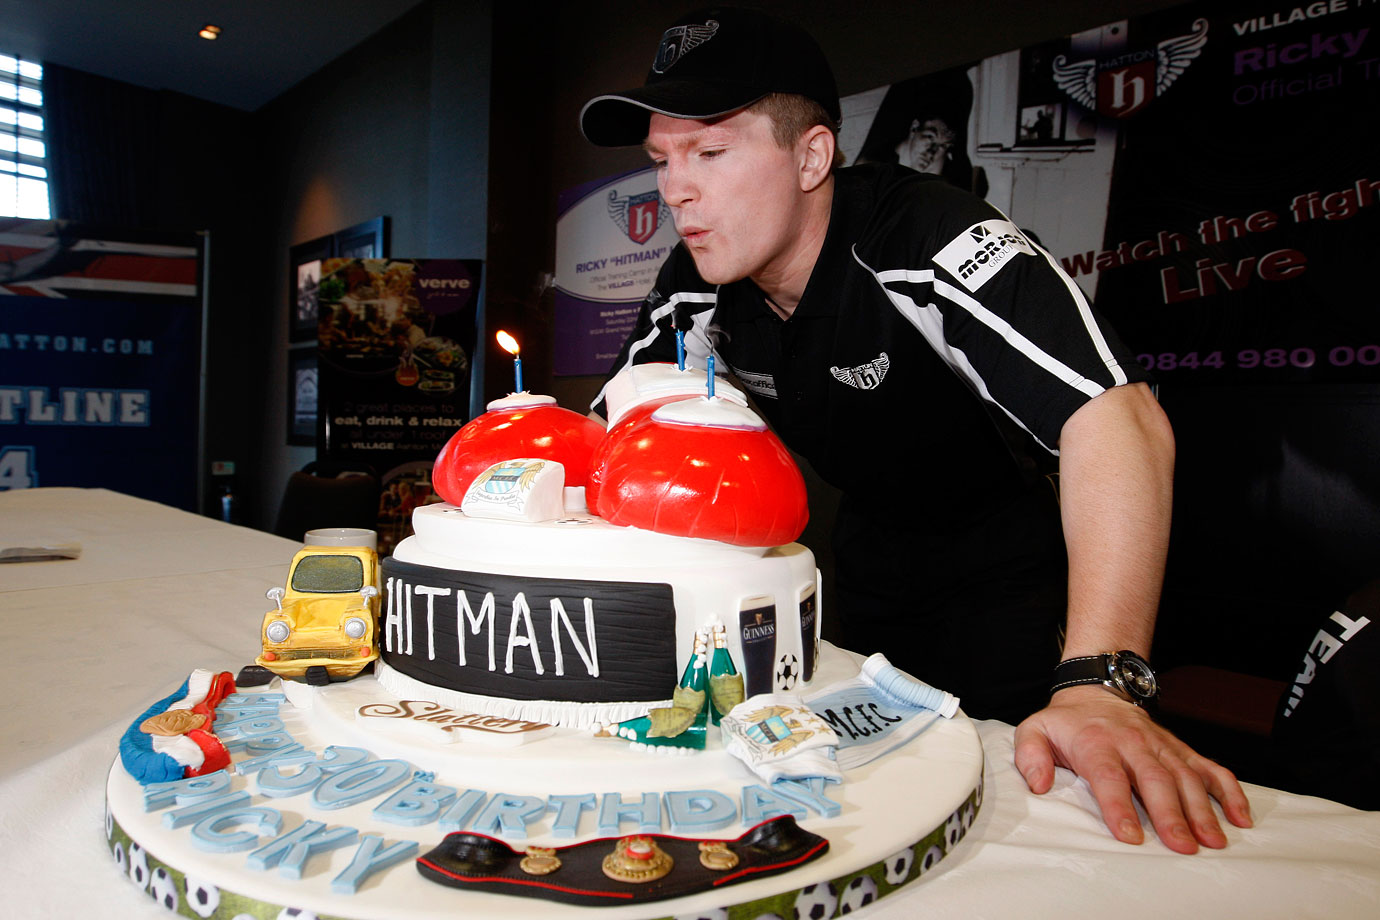 Former boxing champ Ricky Hatton celebrated his 30th birthday before a press conference for his 2008 IBF light welterweight fight against Paulie Malignaggi in Manchester, England. Hatton won the fight via 11th-round TKO.